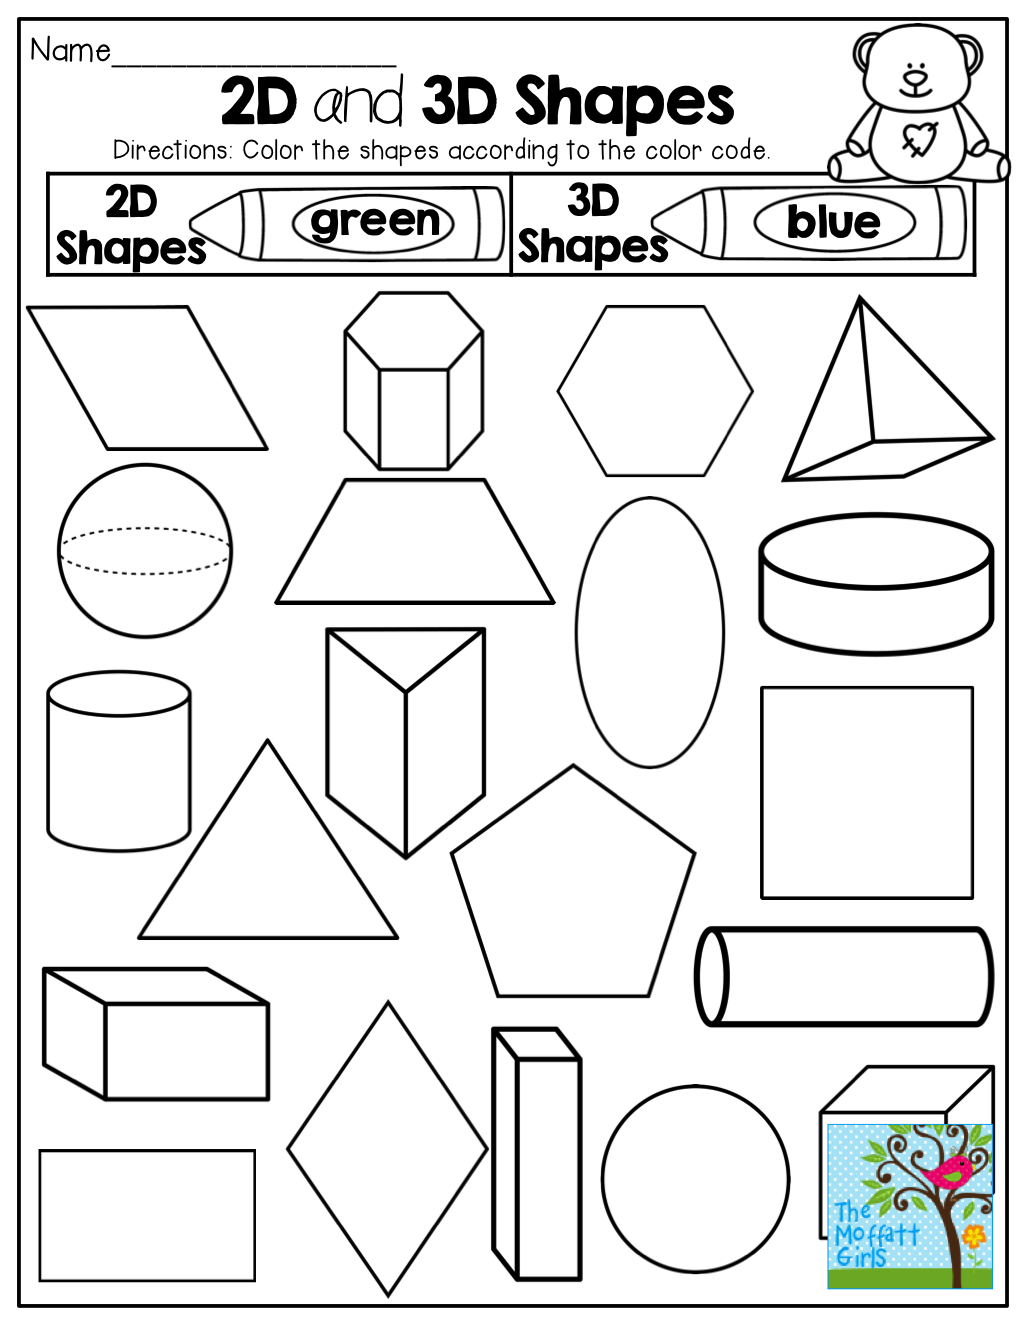 small resolution of 2-D and 3-D Shapes! Color by the code! Tons of fun printables!   Shapes  worksheet kindergarten